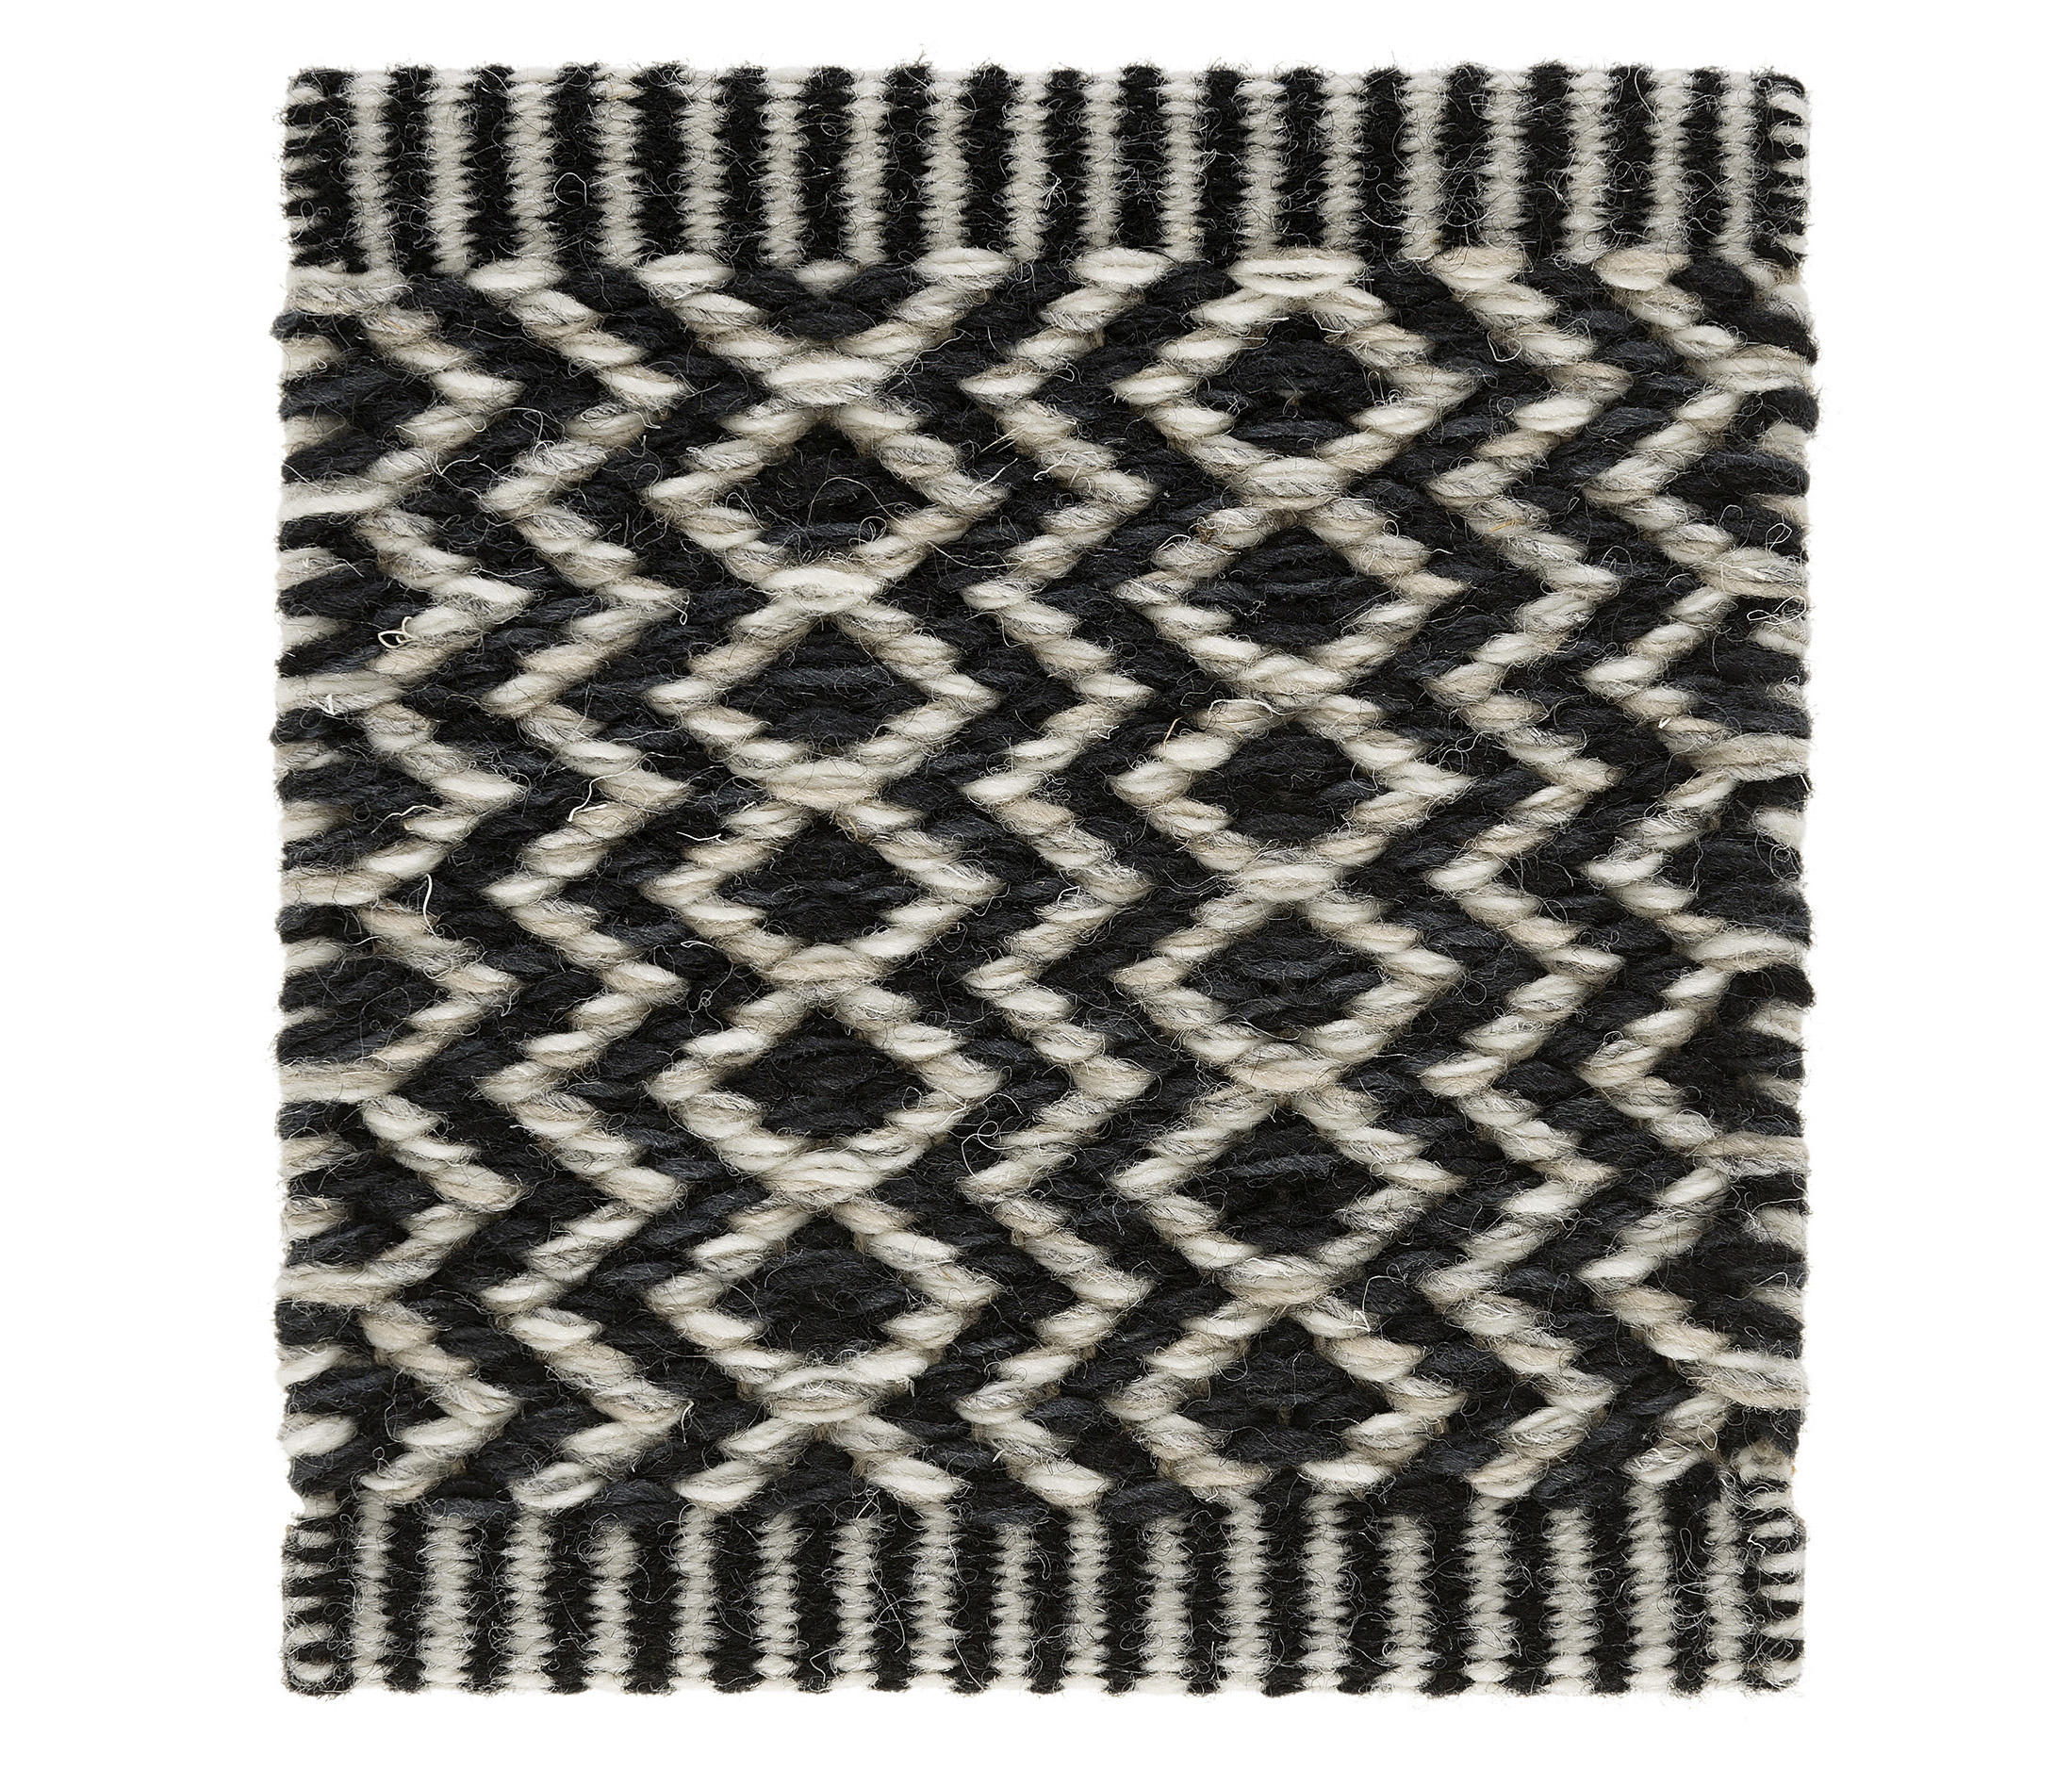 blwh aladdin aladdinrugs rugs hv white and products rug collection nz r gold round black